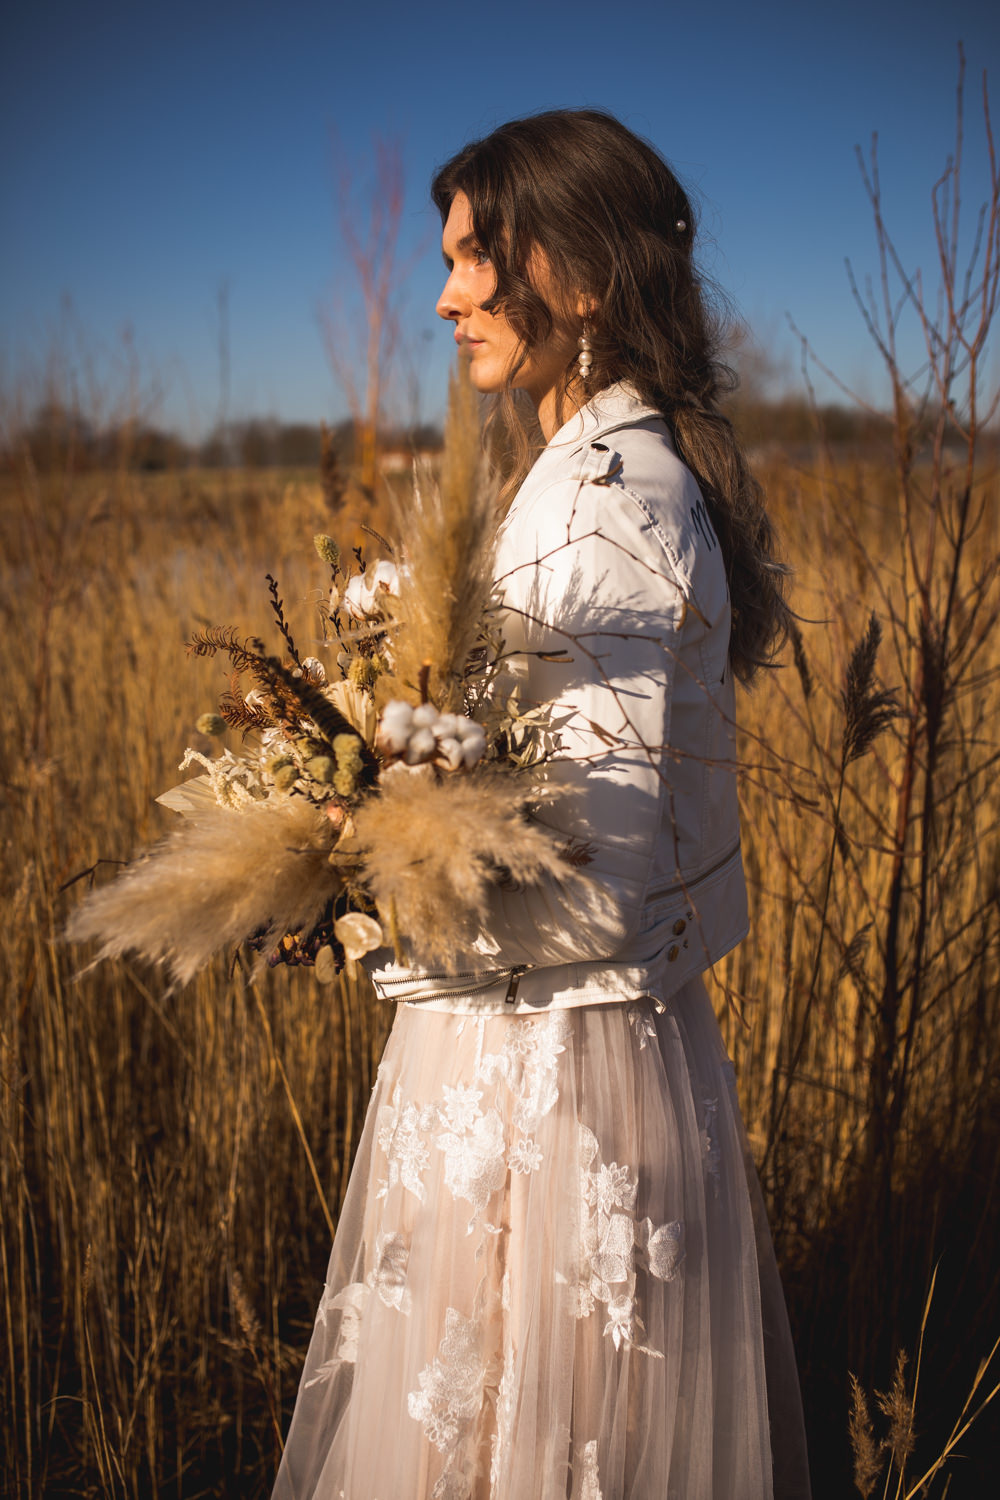 Bride Bridal Bouquet Flowers Pampas Grass Wheat Feather Dried Flower Wedding Ideas Dan Lambourne Photography